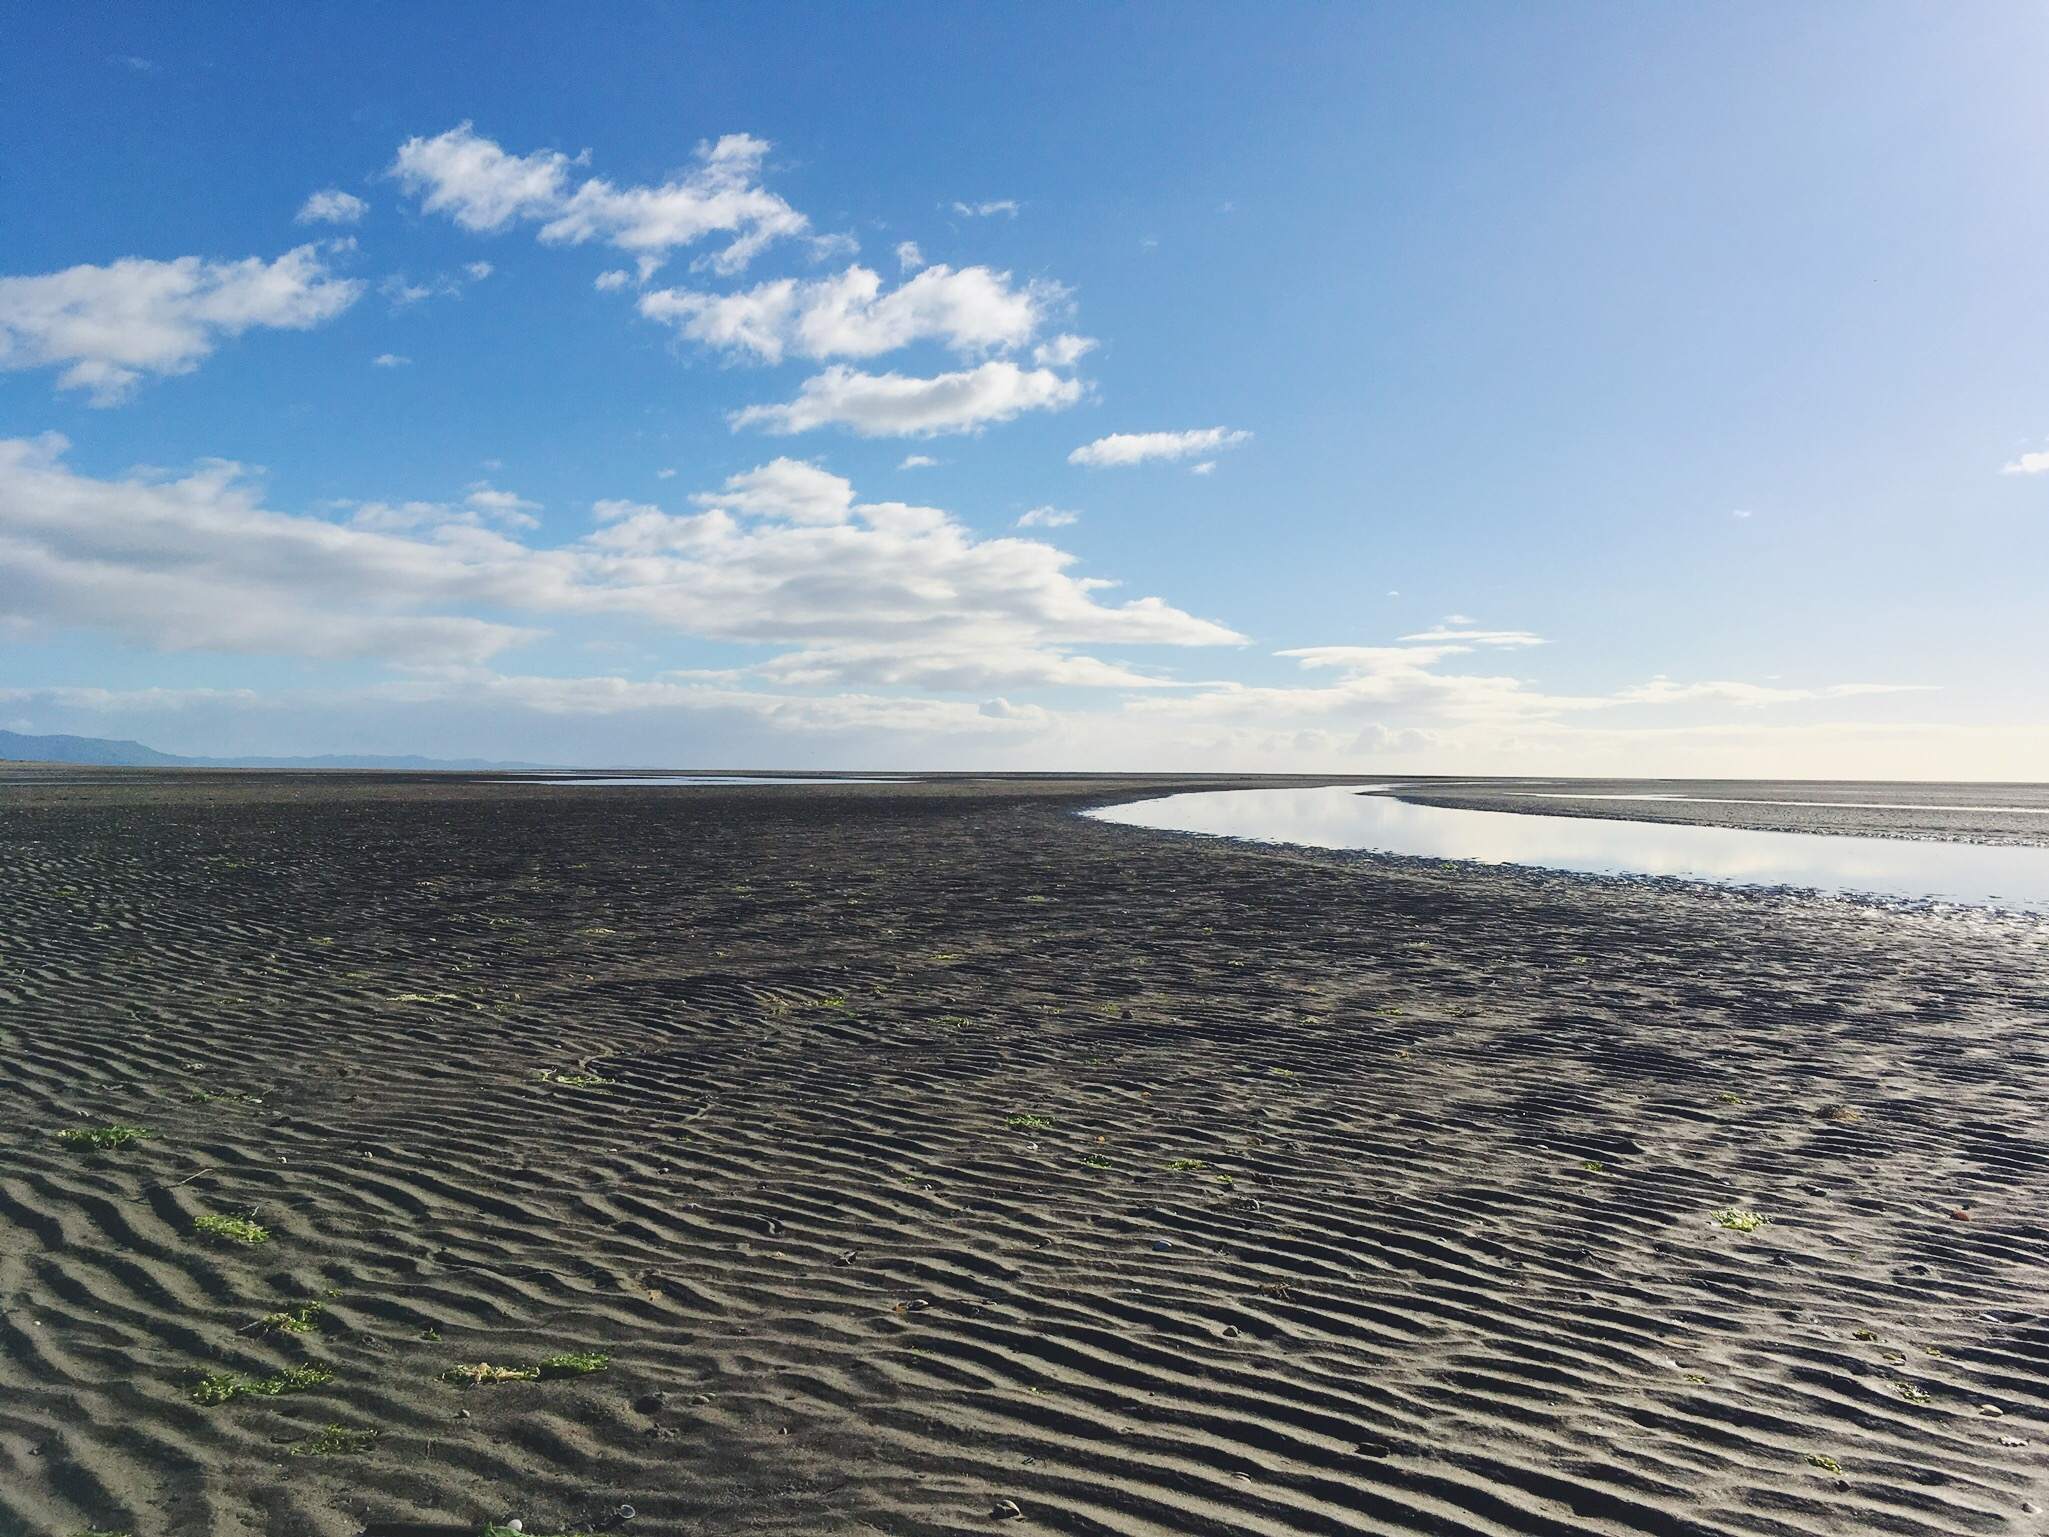 Golden Bay at low tide--reminiscent of those PNW beaches at home.